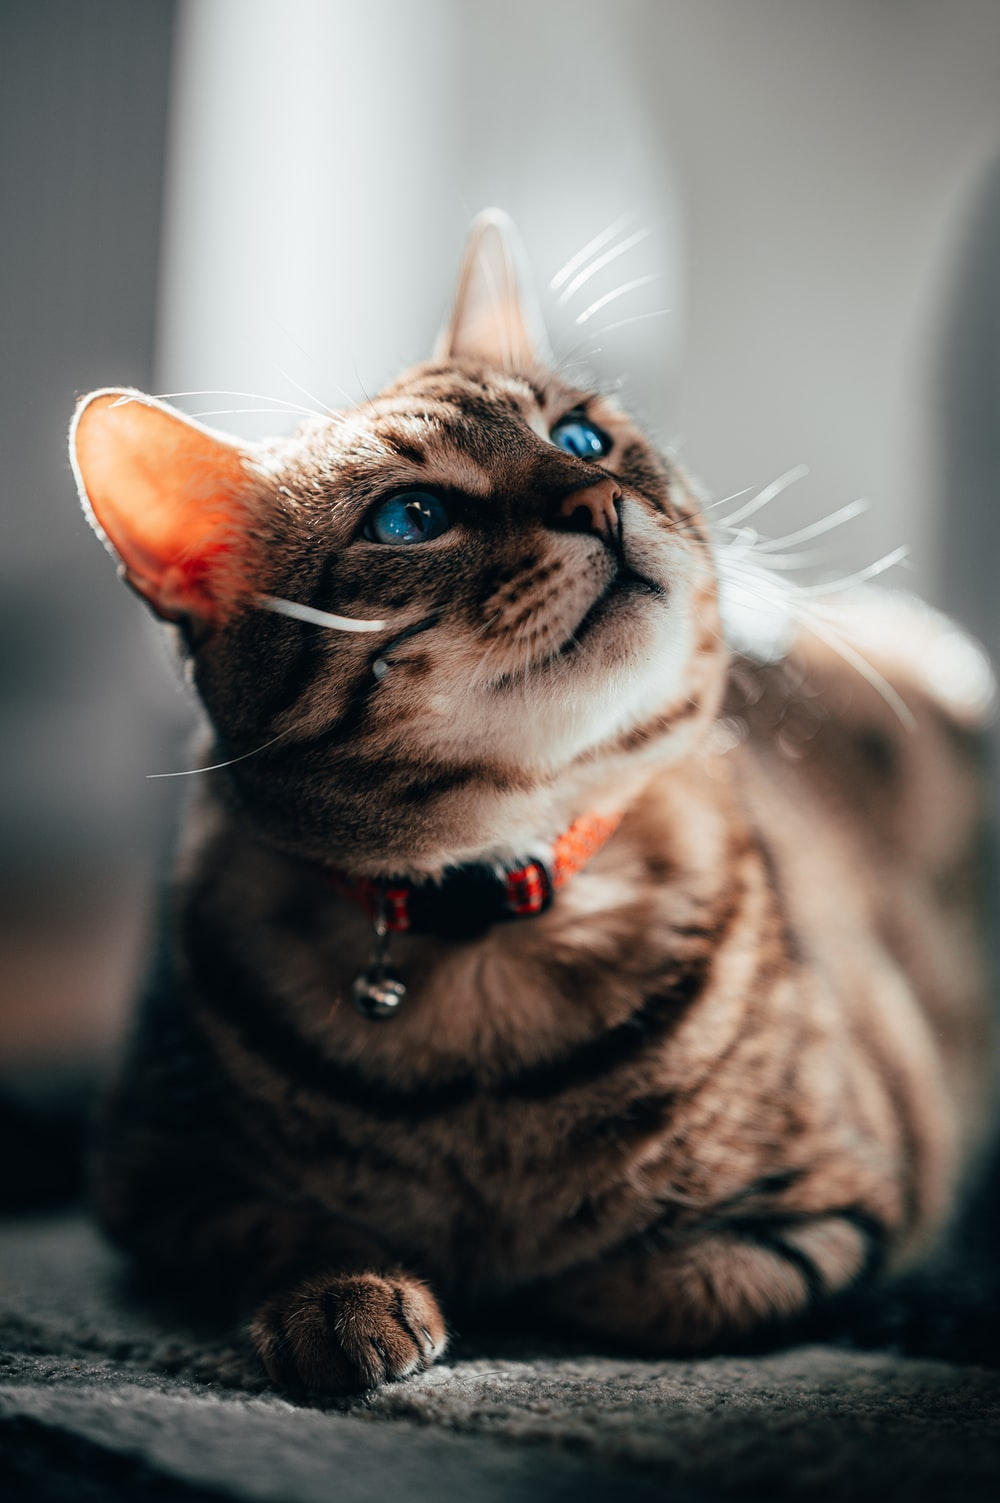 brown tabby cat with red collar